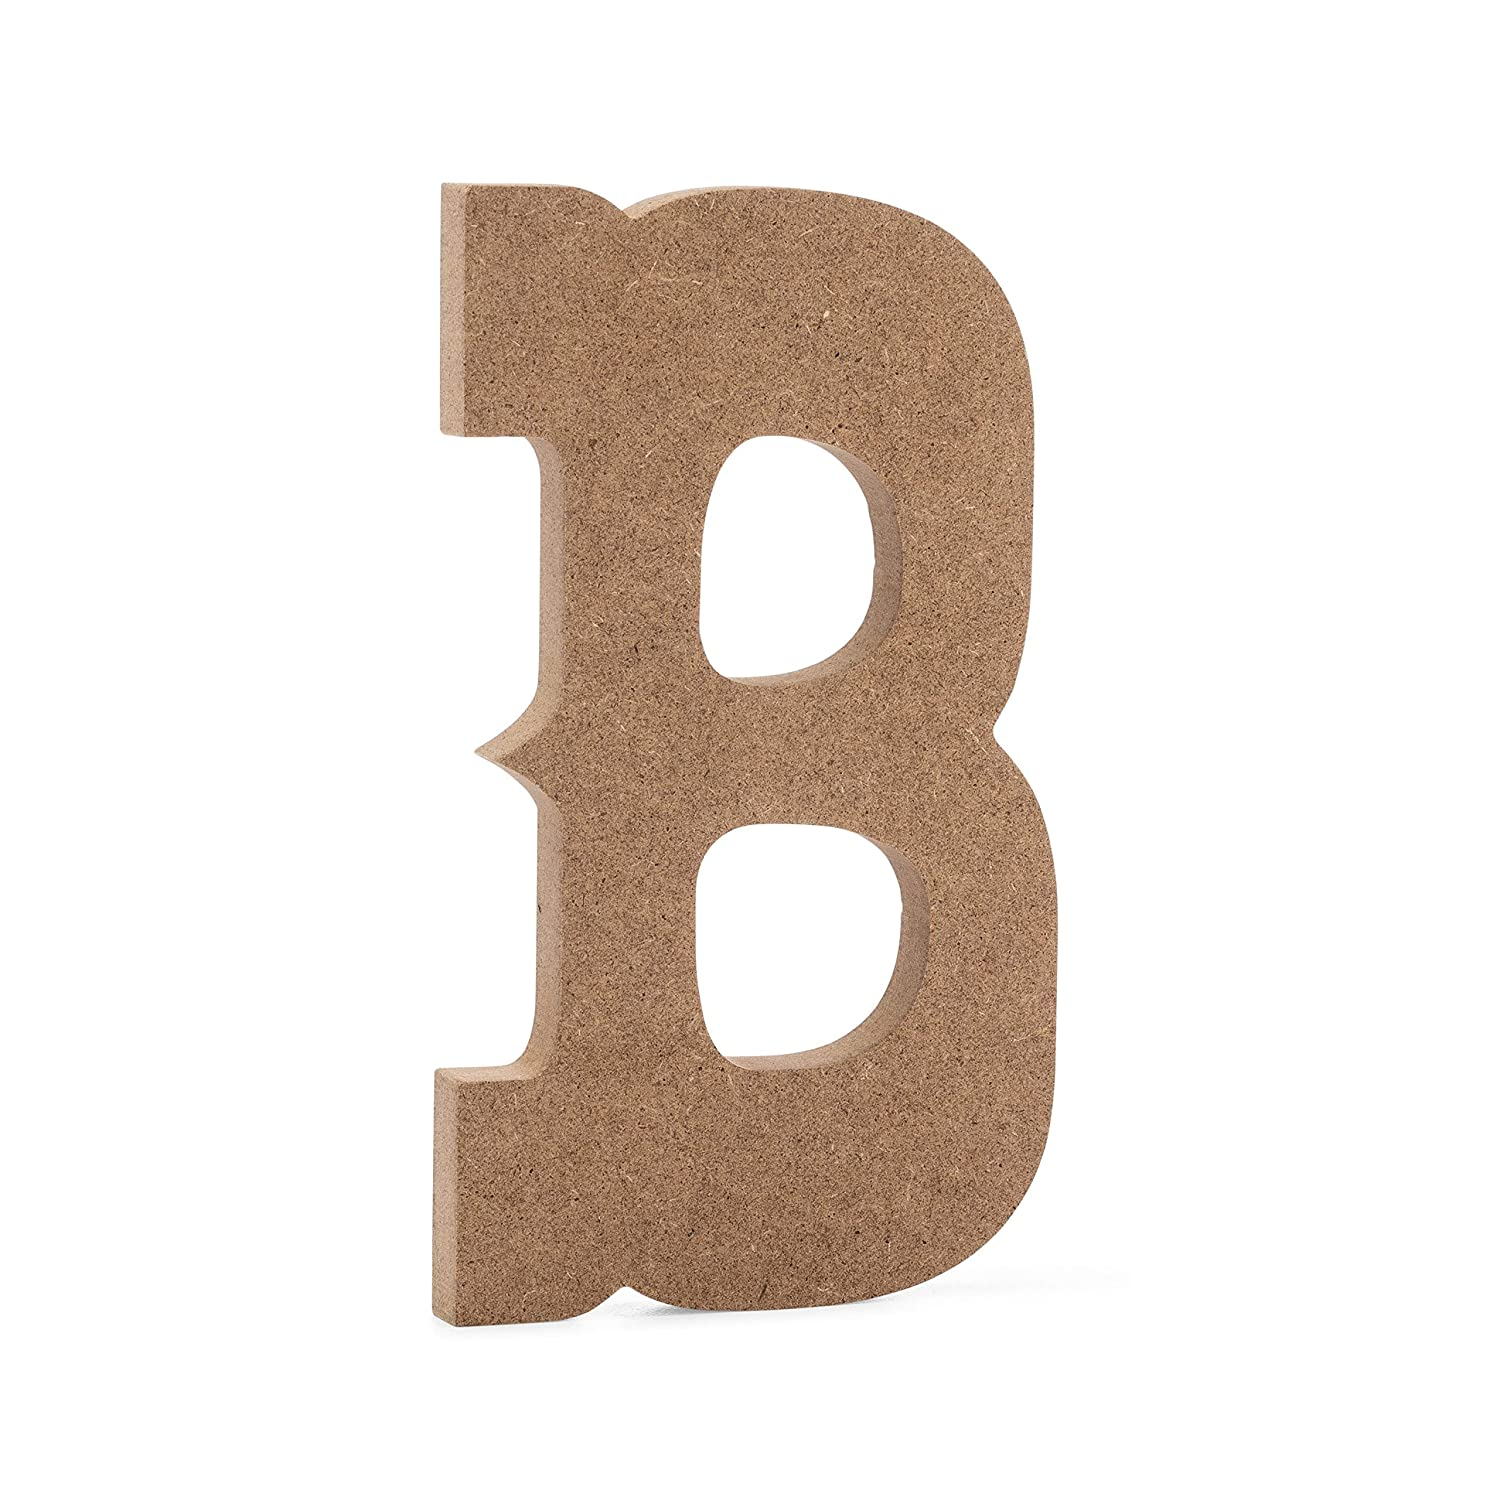 """6"""" Western Wooden Letter B - Joepaul'S Crafts Premium Mdf Wood Wall Letters (6 Inch, B)"""